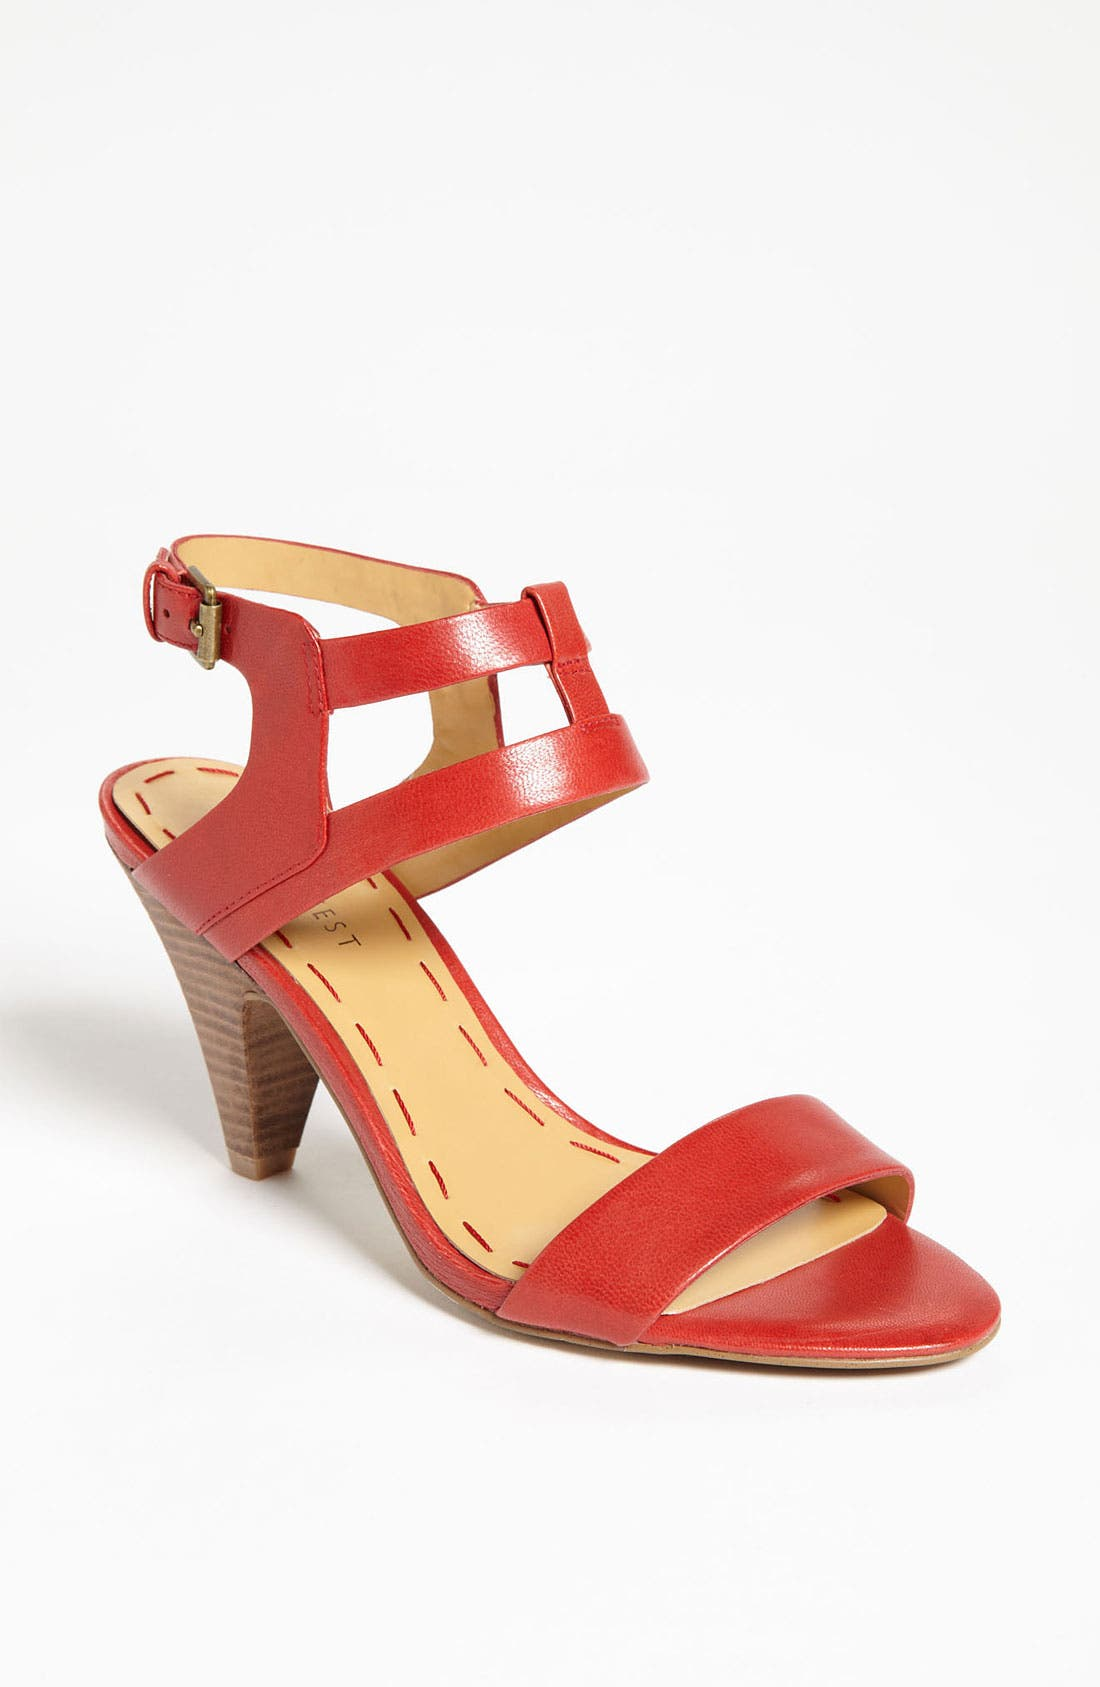 Main Image - Nine West 'Catatude' Sandal